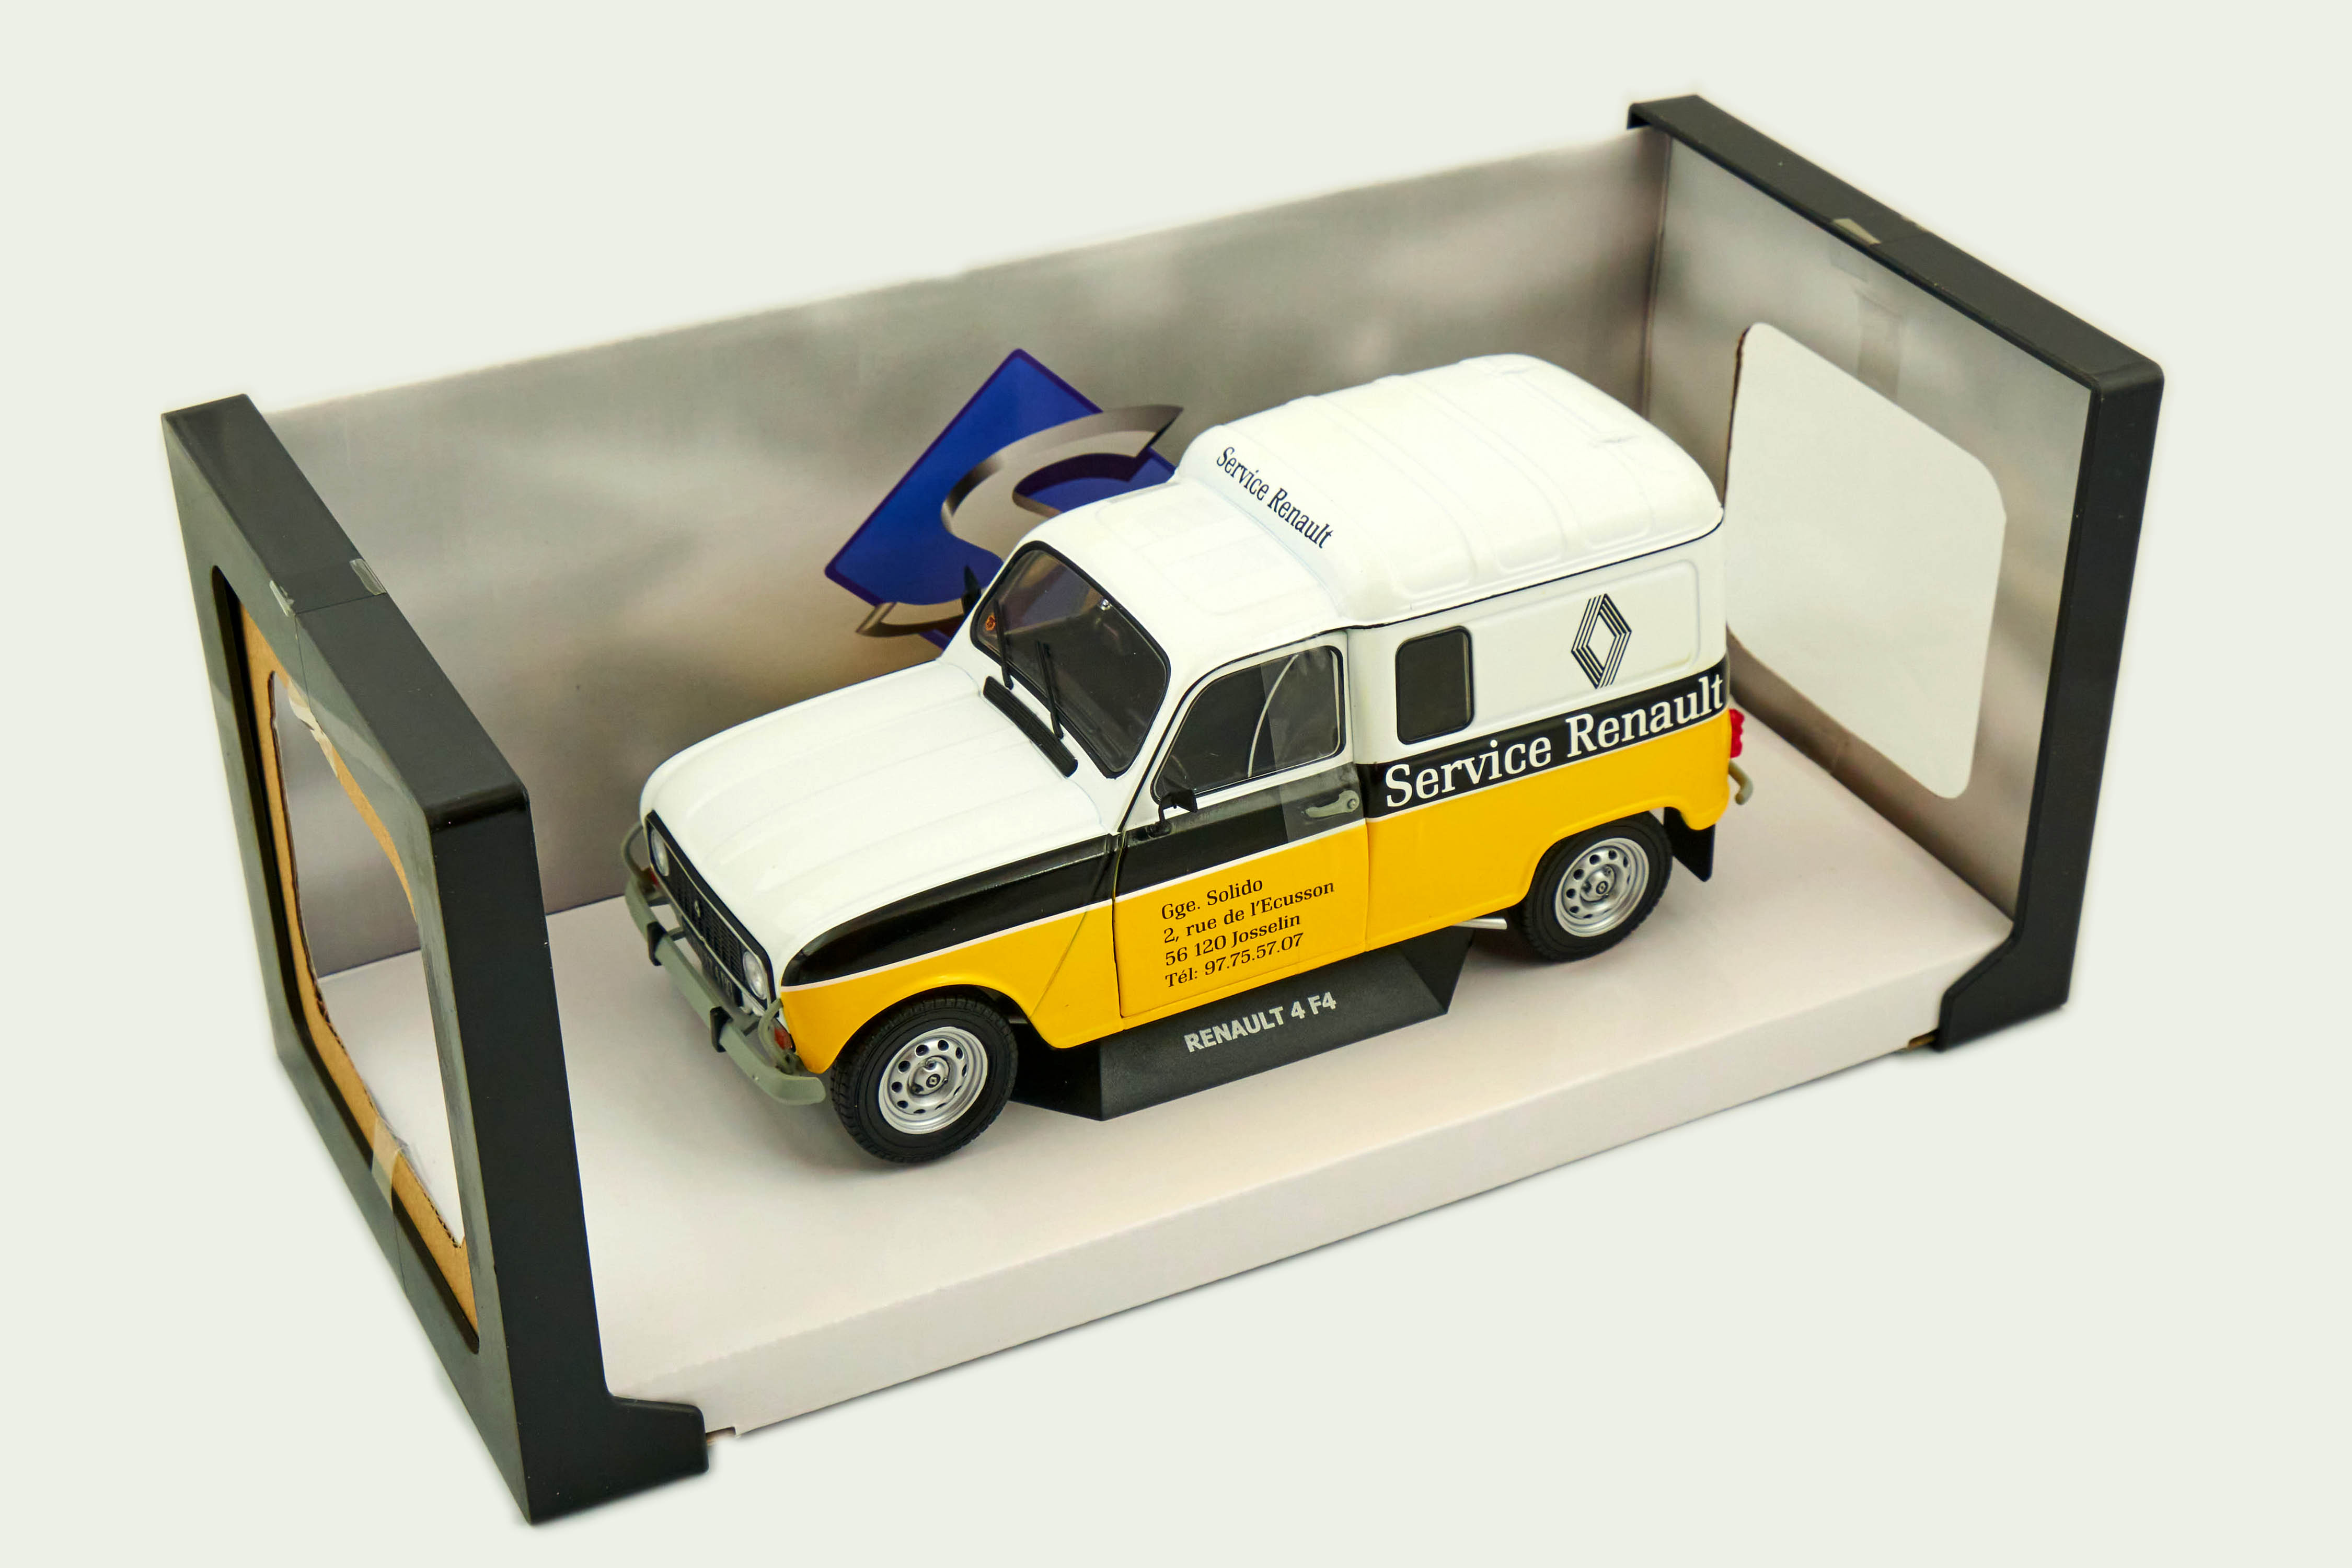 Renault 4lf4 Service Renault 1/18 Solido